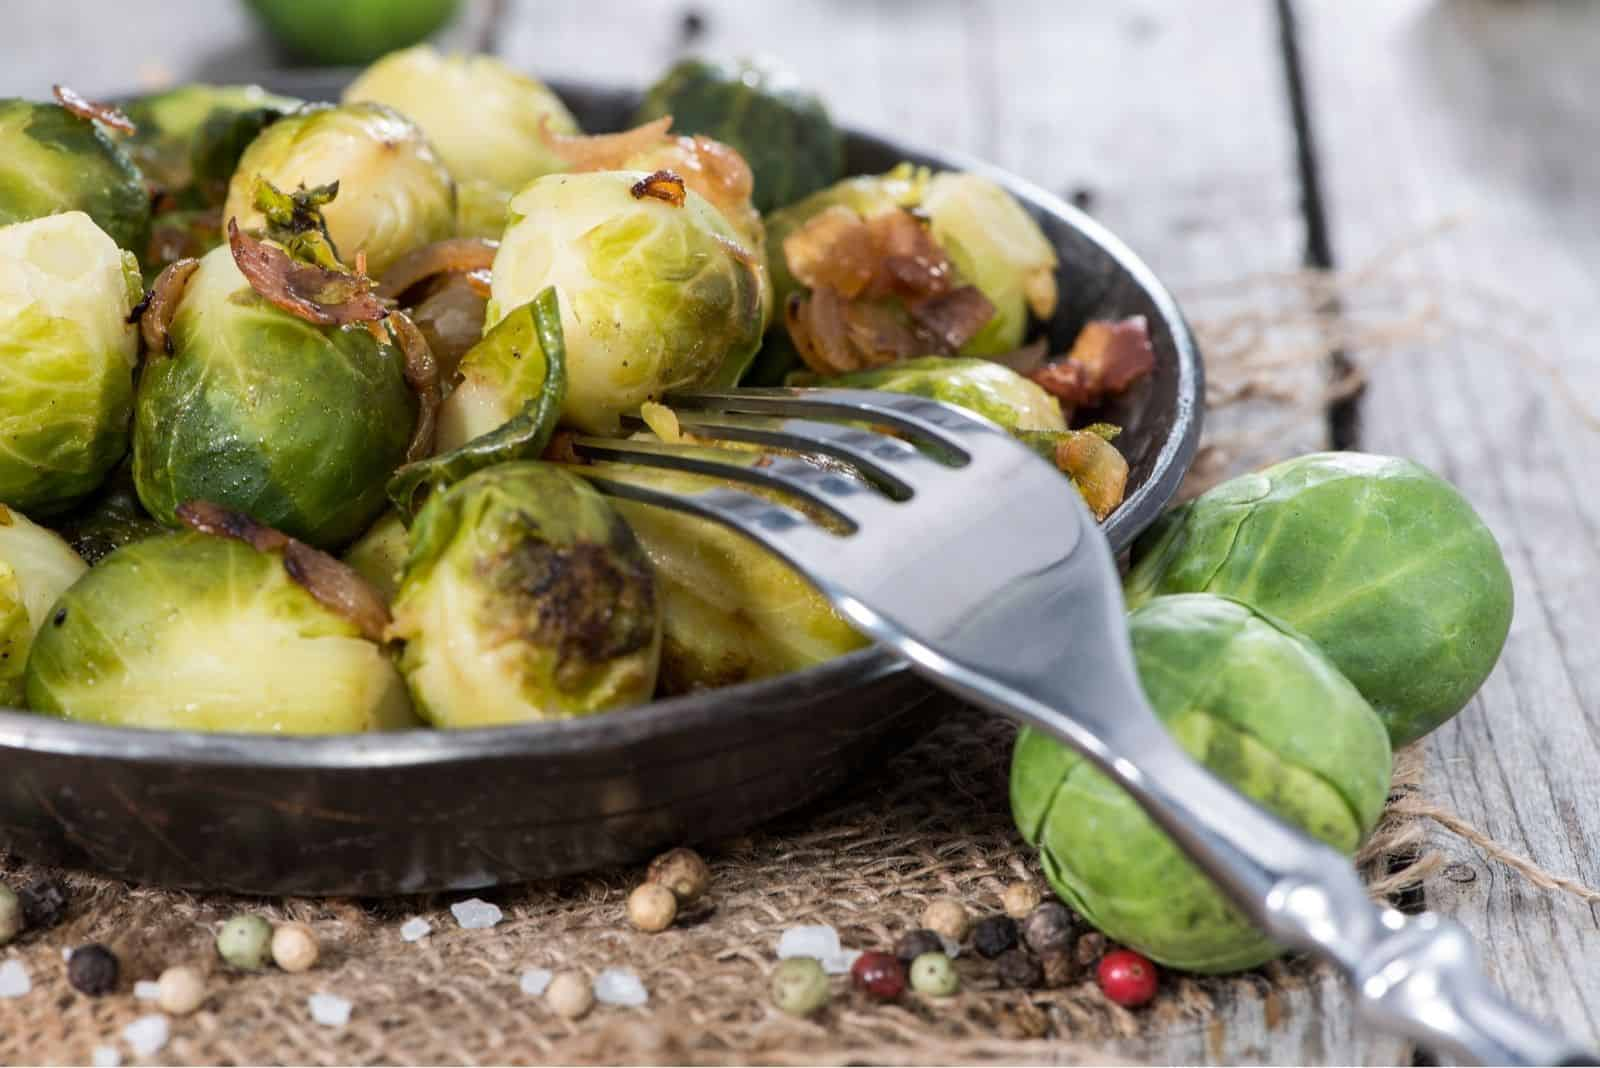 fried brussel sprouts with ham and onion on the plate with a fork